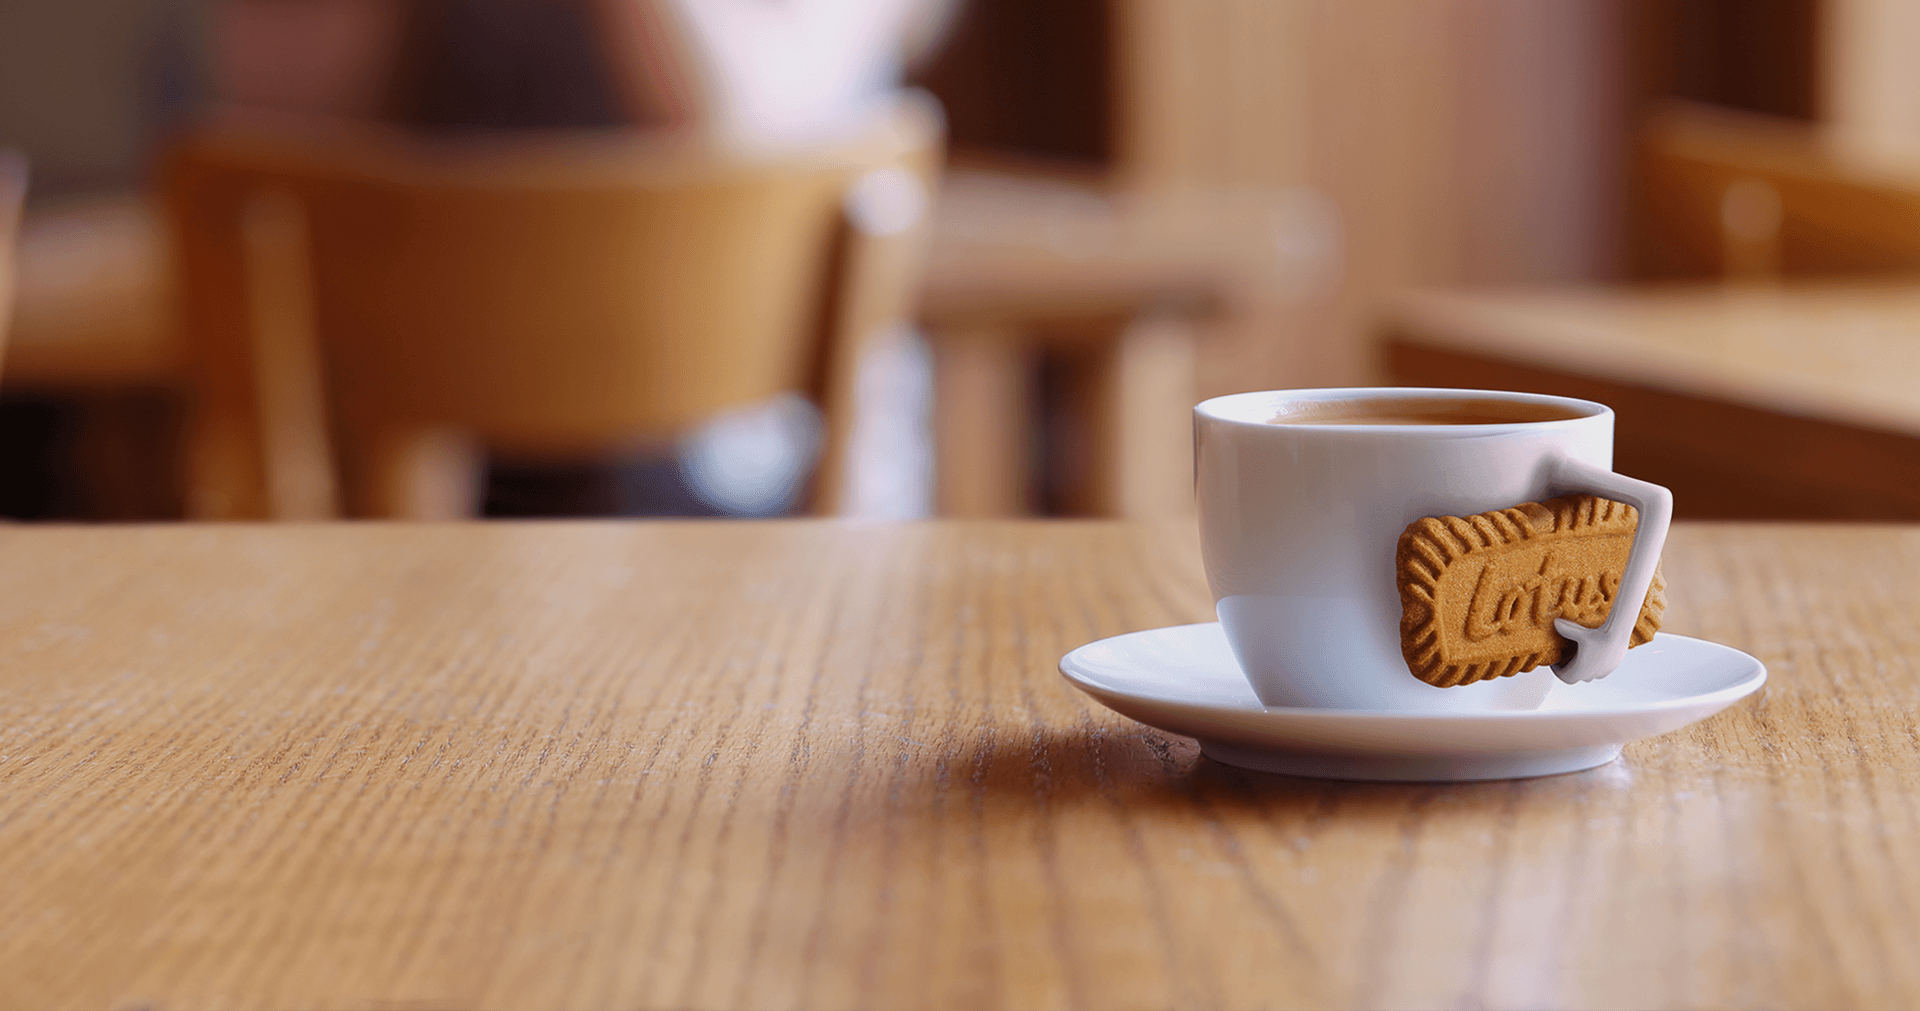 A cup of coffee holding a biscoff cookie